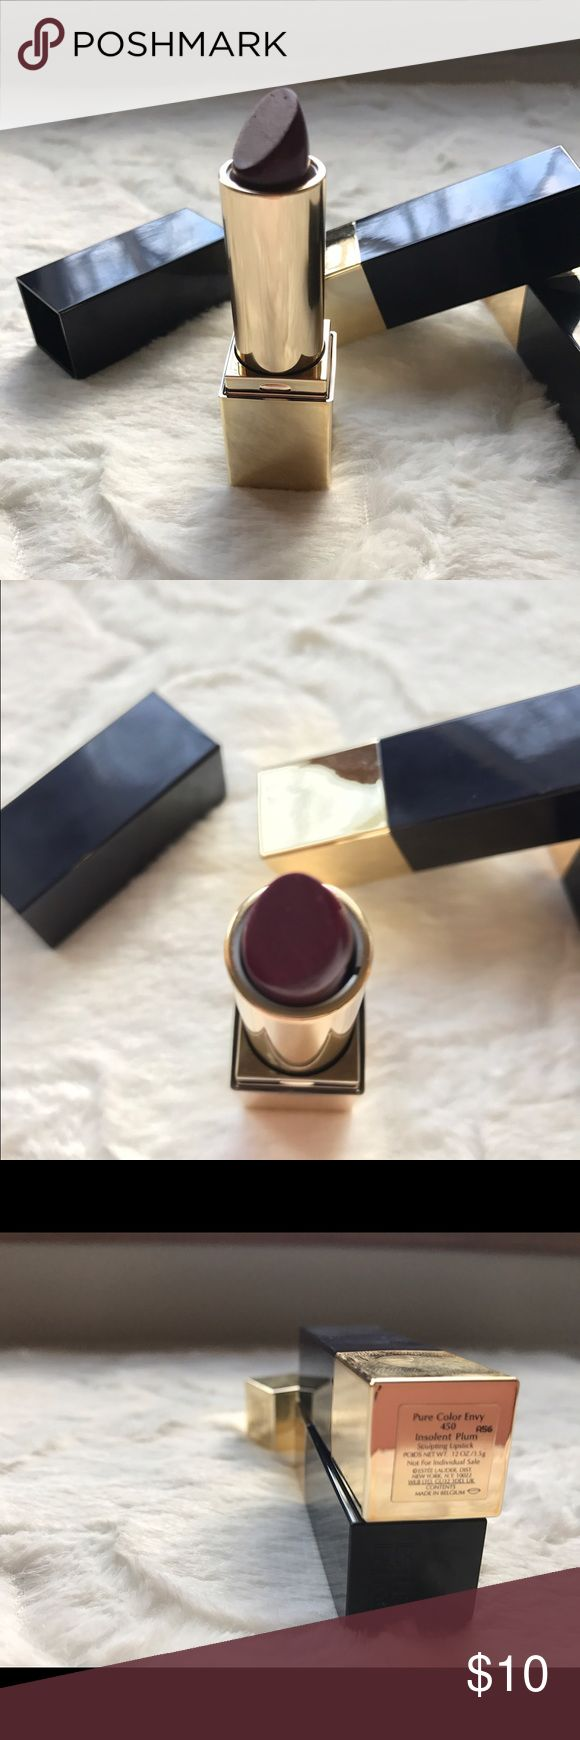 Estée Lauder insolent plum lipstick Authentic Estée Lauder Insolent Plum lipstick. New. A few nicks in the lipstick but never used. Keywords: women's, gifts, fashion, trendy, unique, New, nwt, boutique, free gift, engagement, wedding, bling, special occasion, vacation, free Shipping, makeup, eyes, lips Estee Lauder Makeup Lipstick